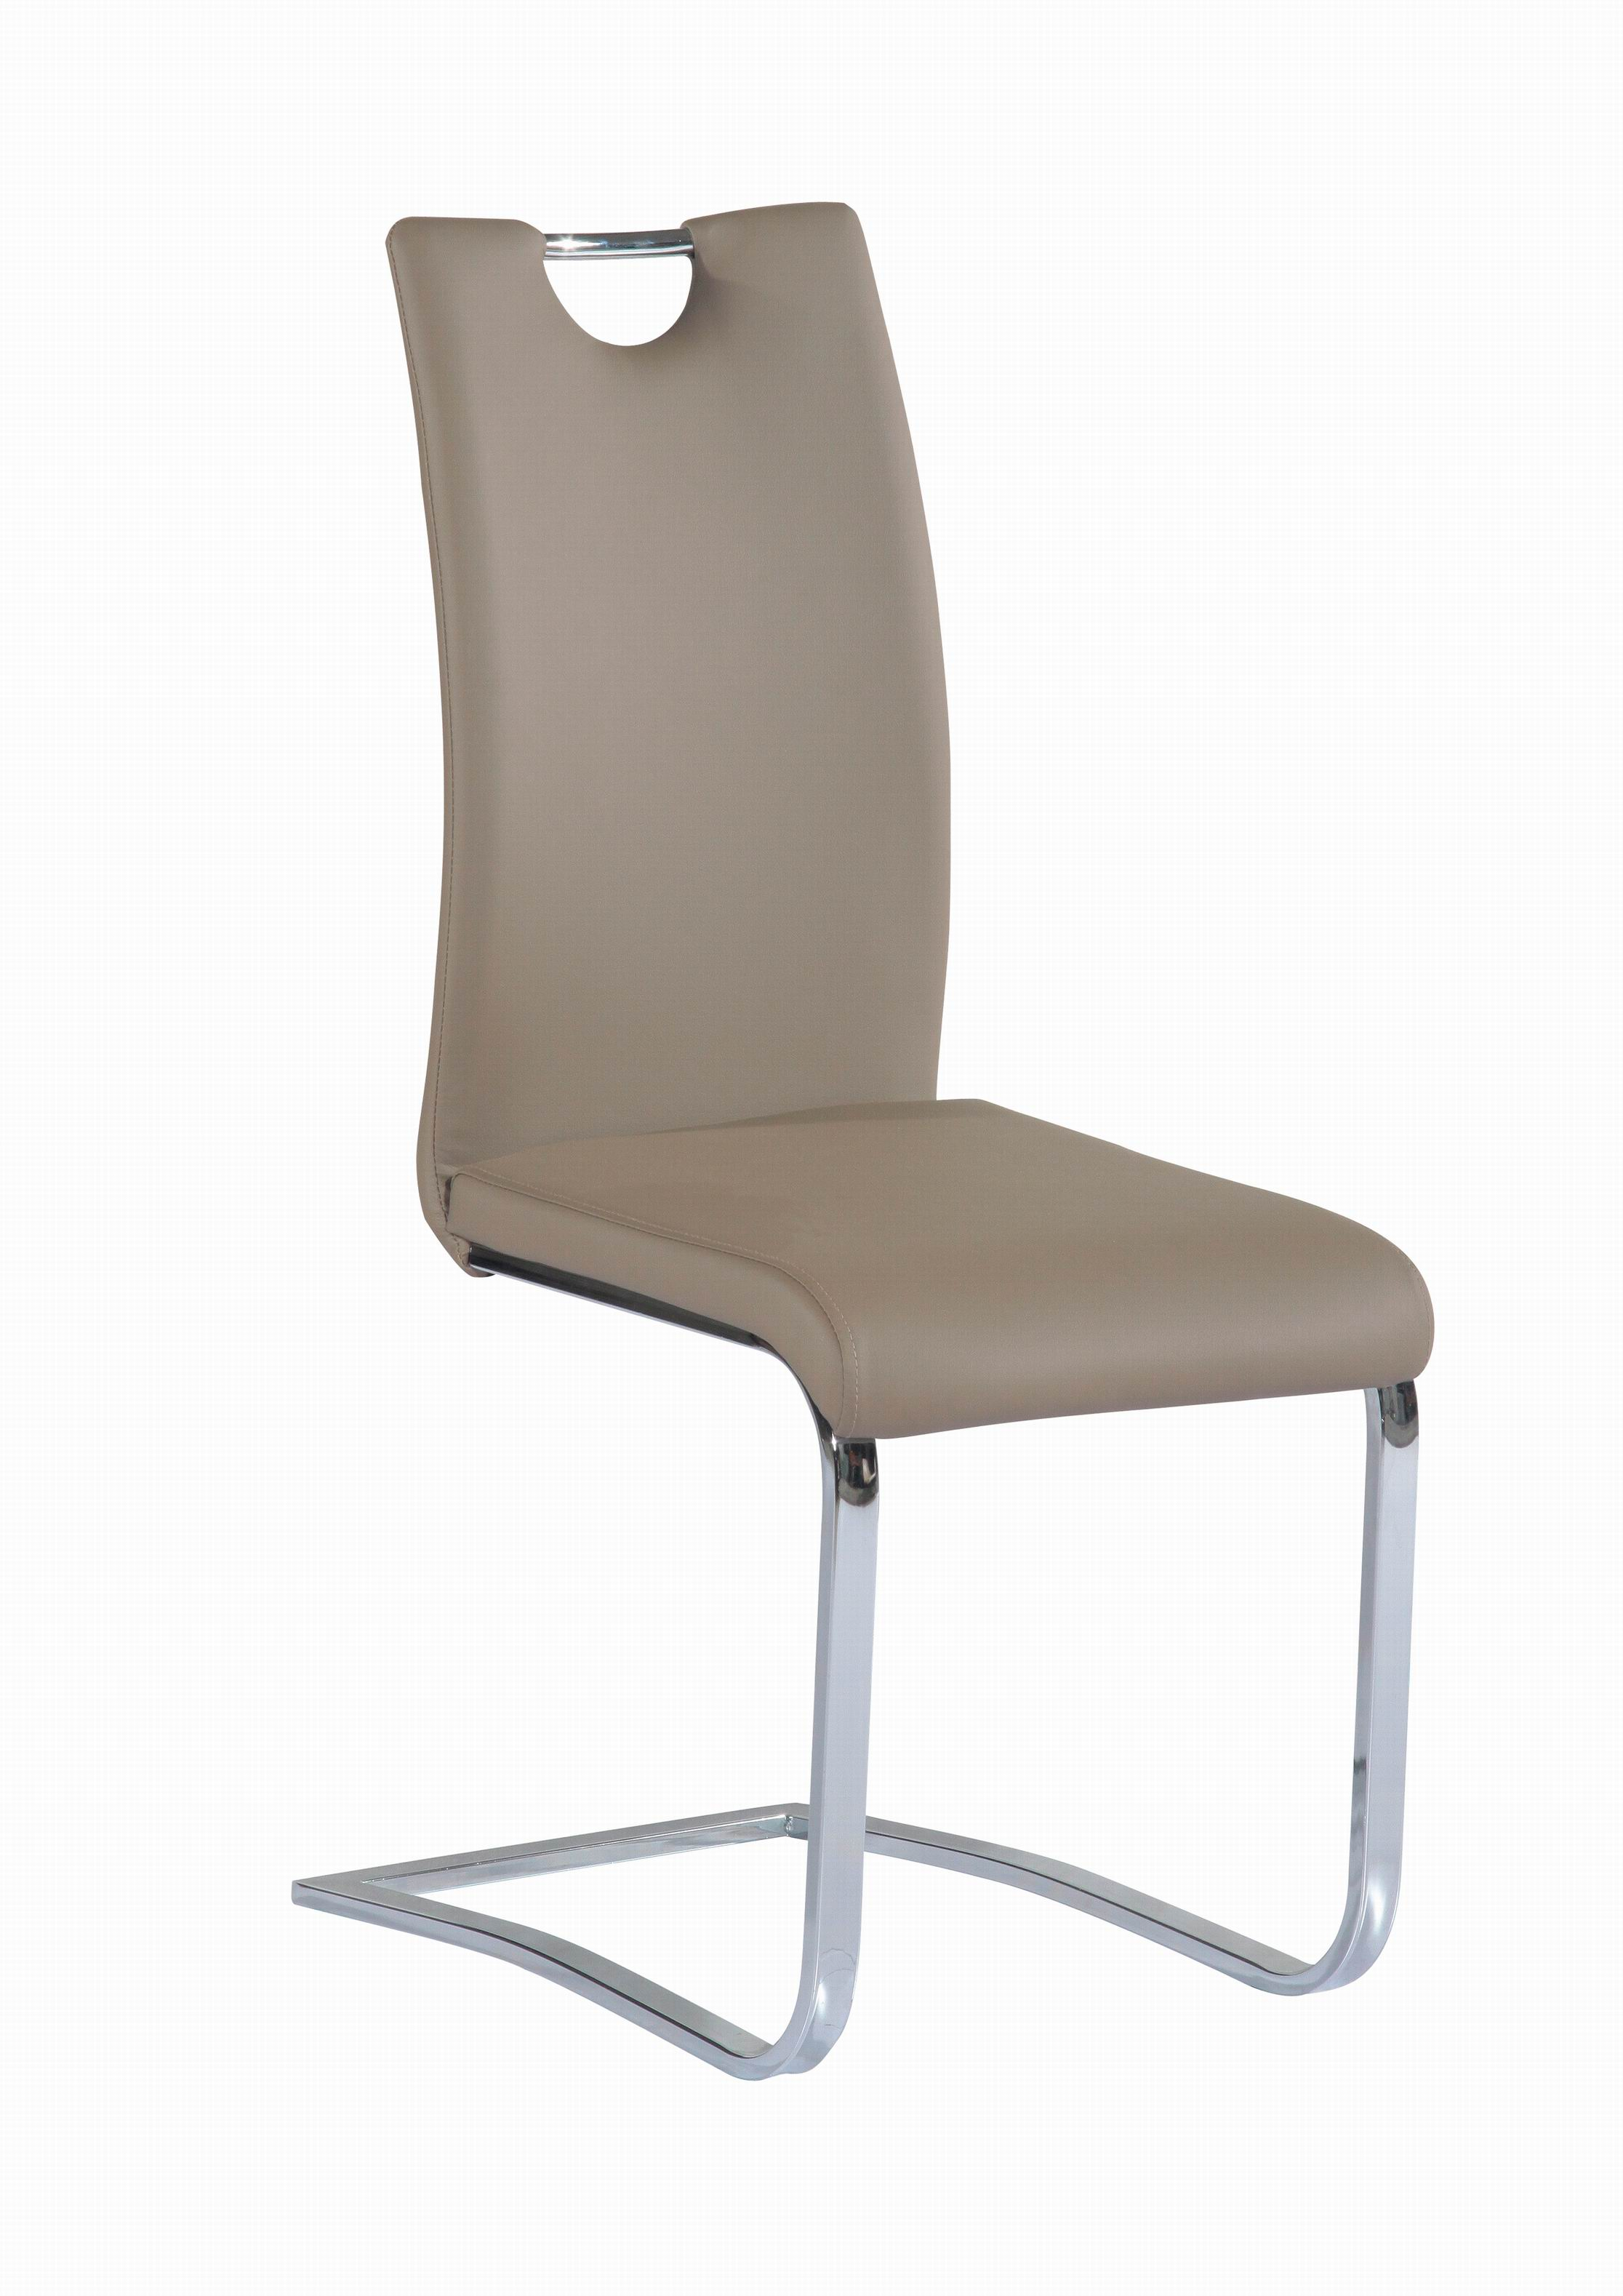 Dining Chairs With Handles On Back Taupe Upholstered Side Chair With Chrome Frame And Handle